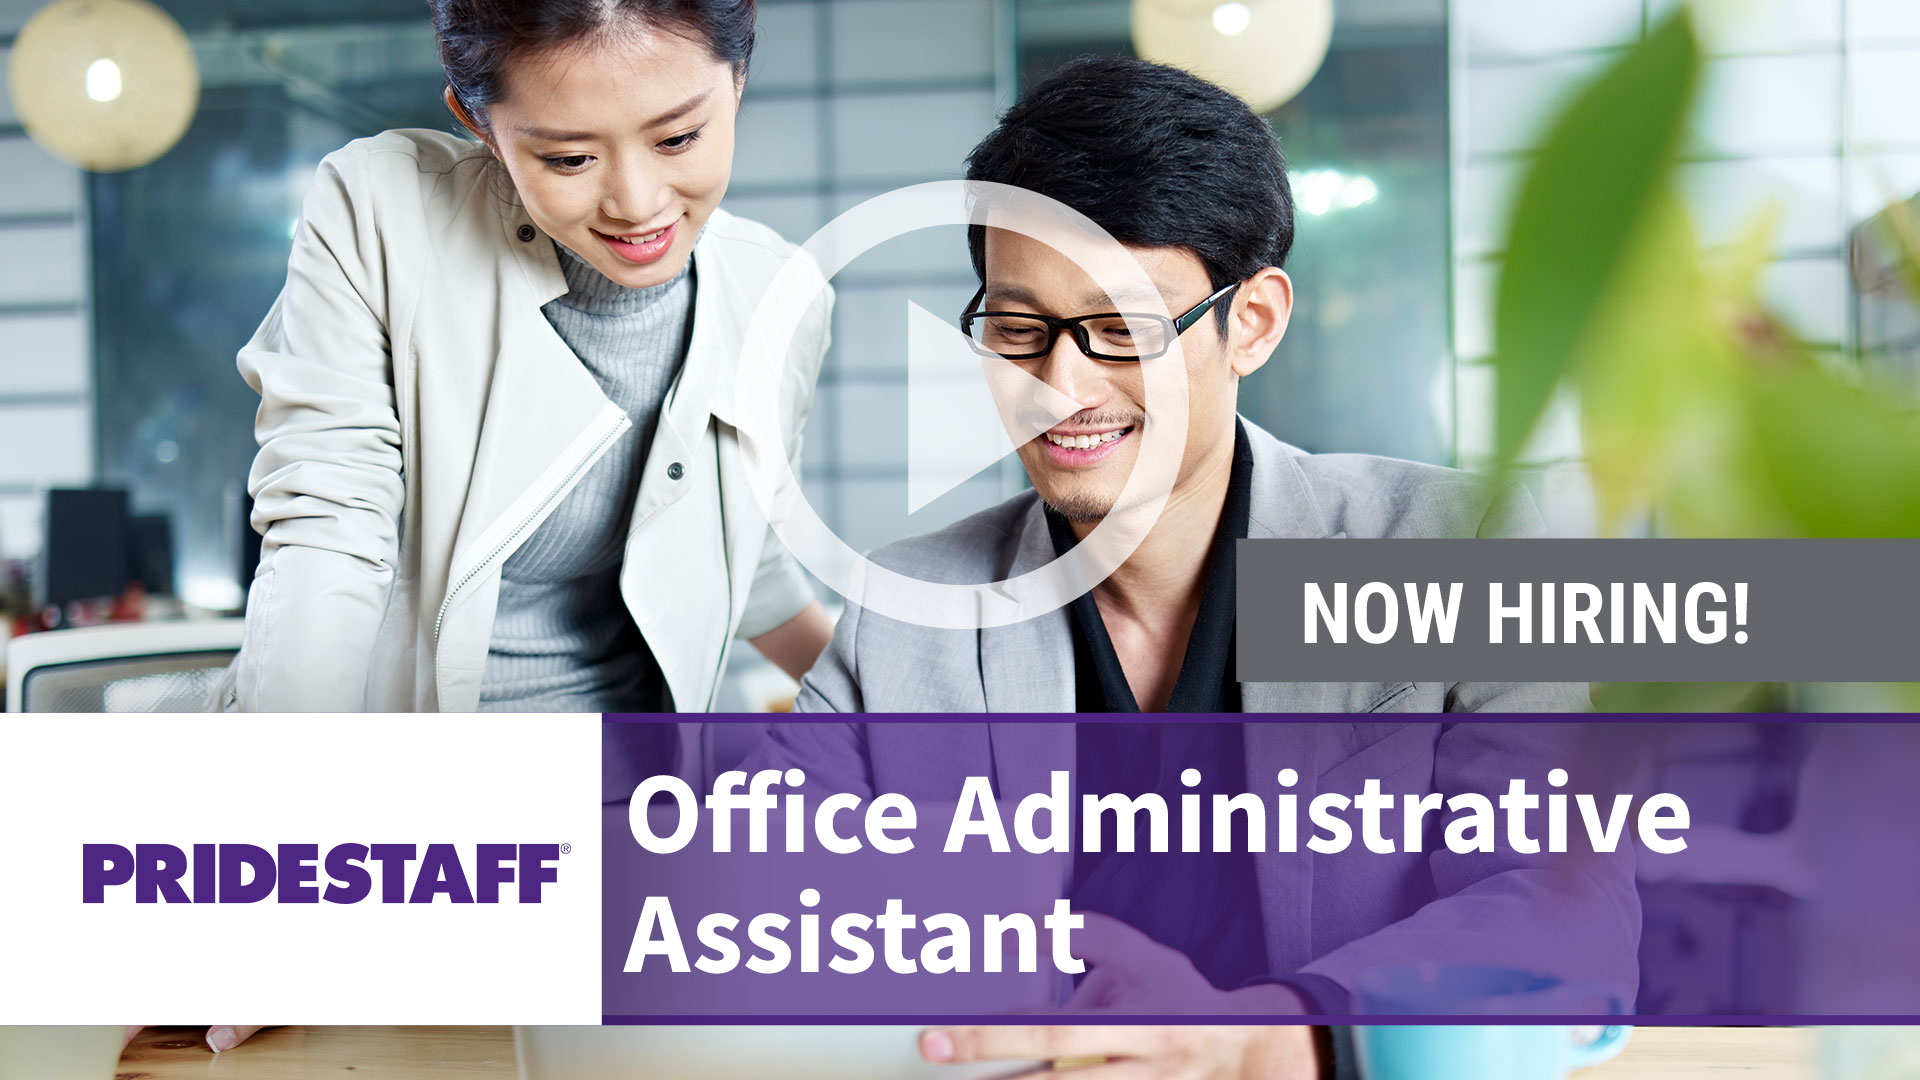 Watch our careers video for available job opening Office Administrative Assistant in Visalia, California